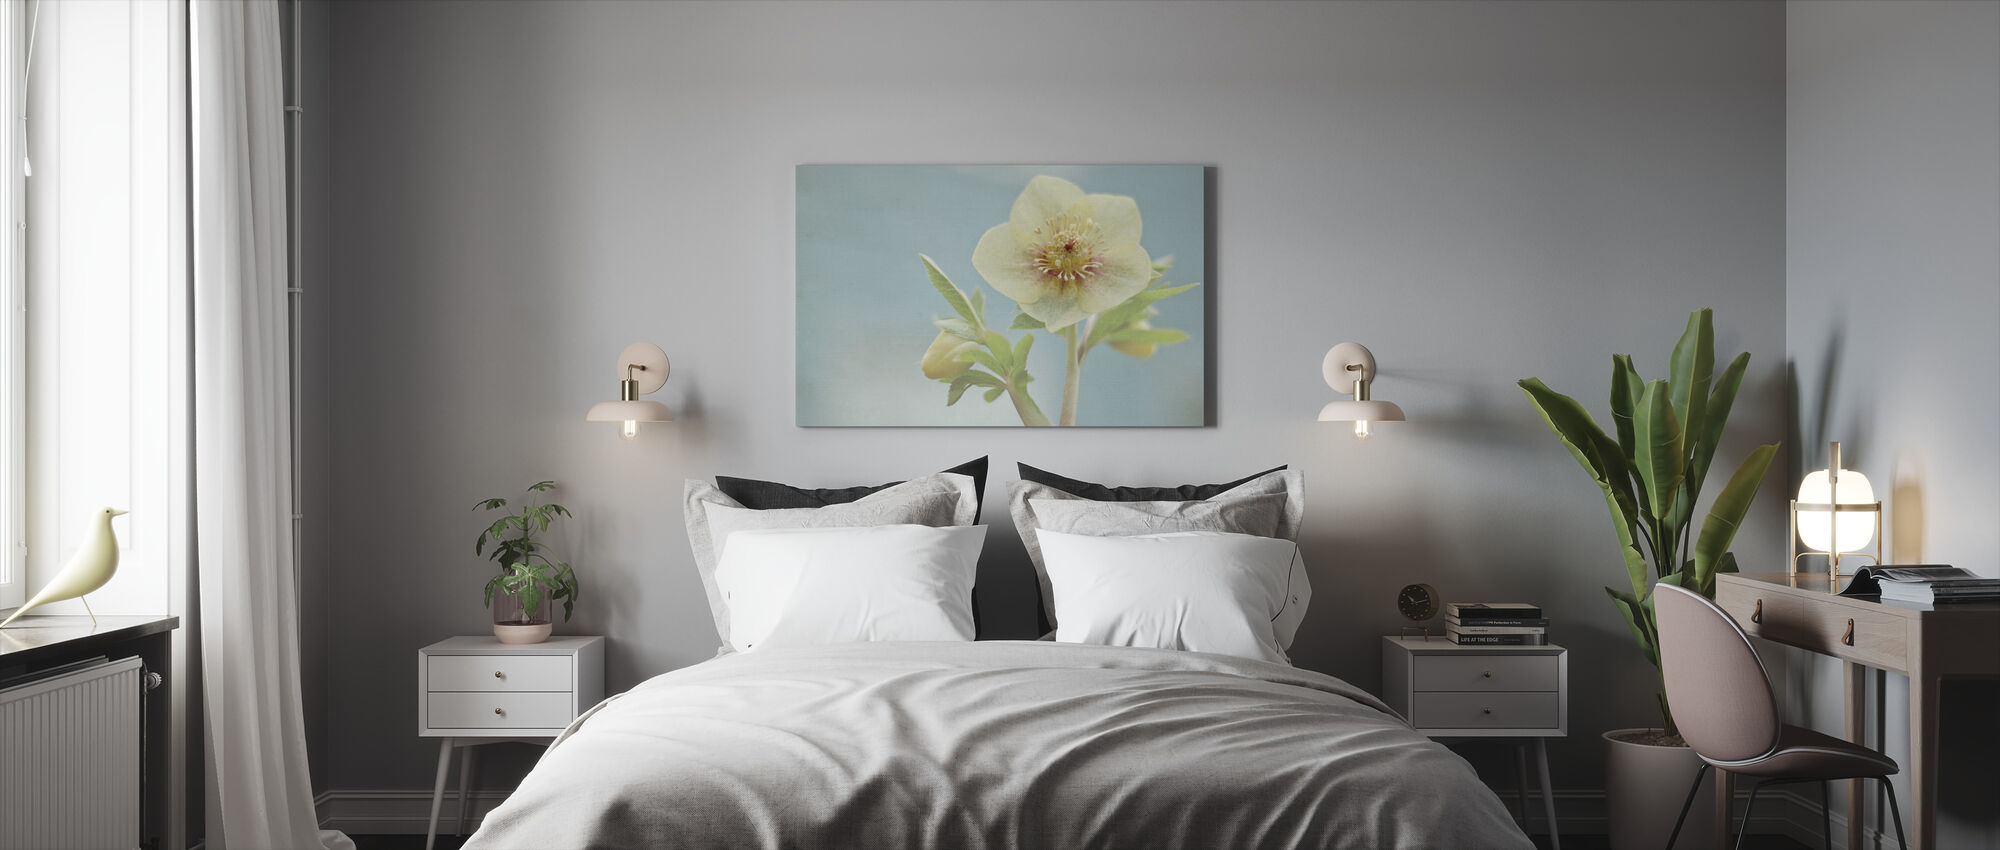 Heliotrope 2 - Canvas print - Bedroom